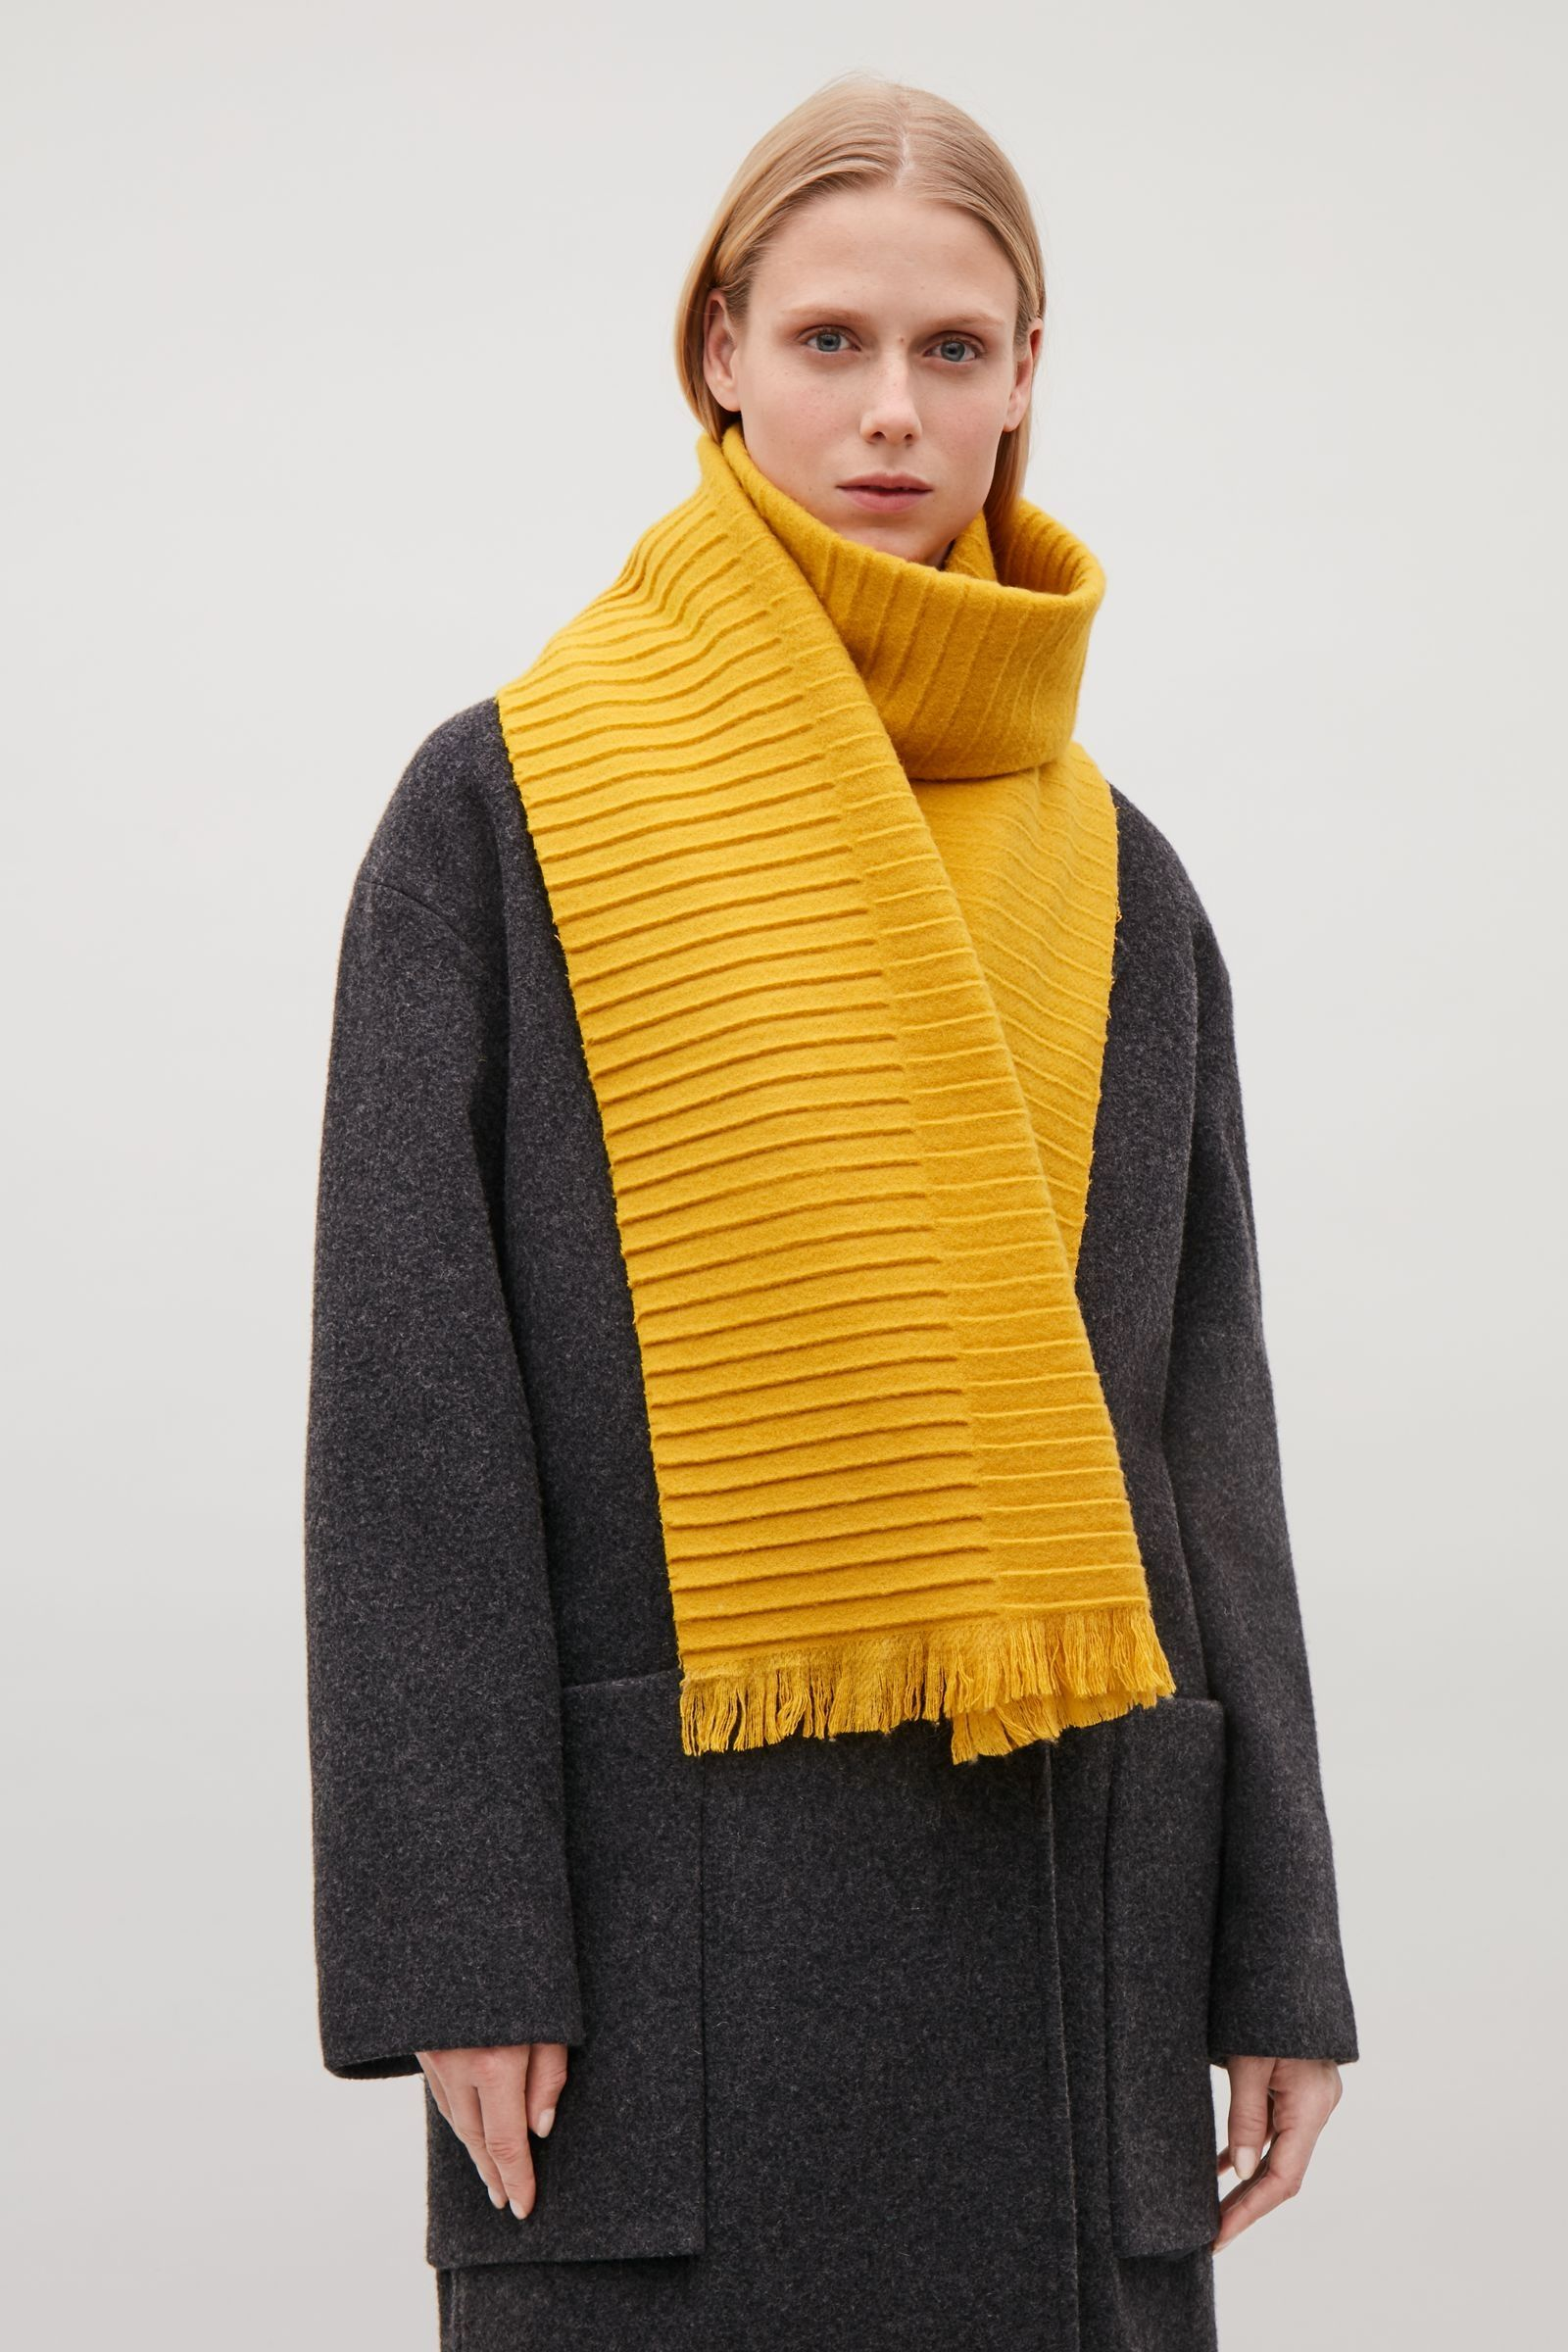 0e4d027c55eff6 COS image 3 of Pleated wool scarf in Yellow | Nice Accessories ...